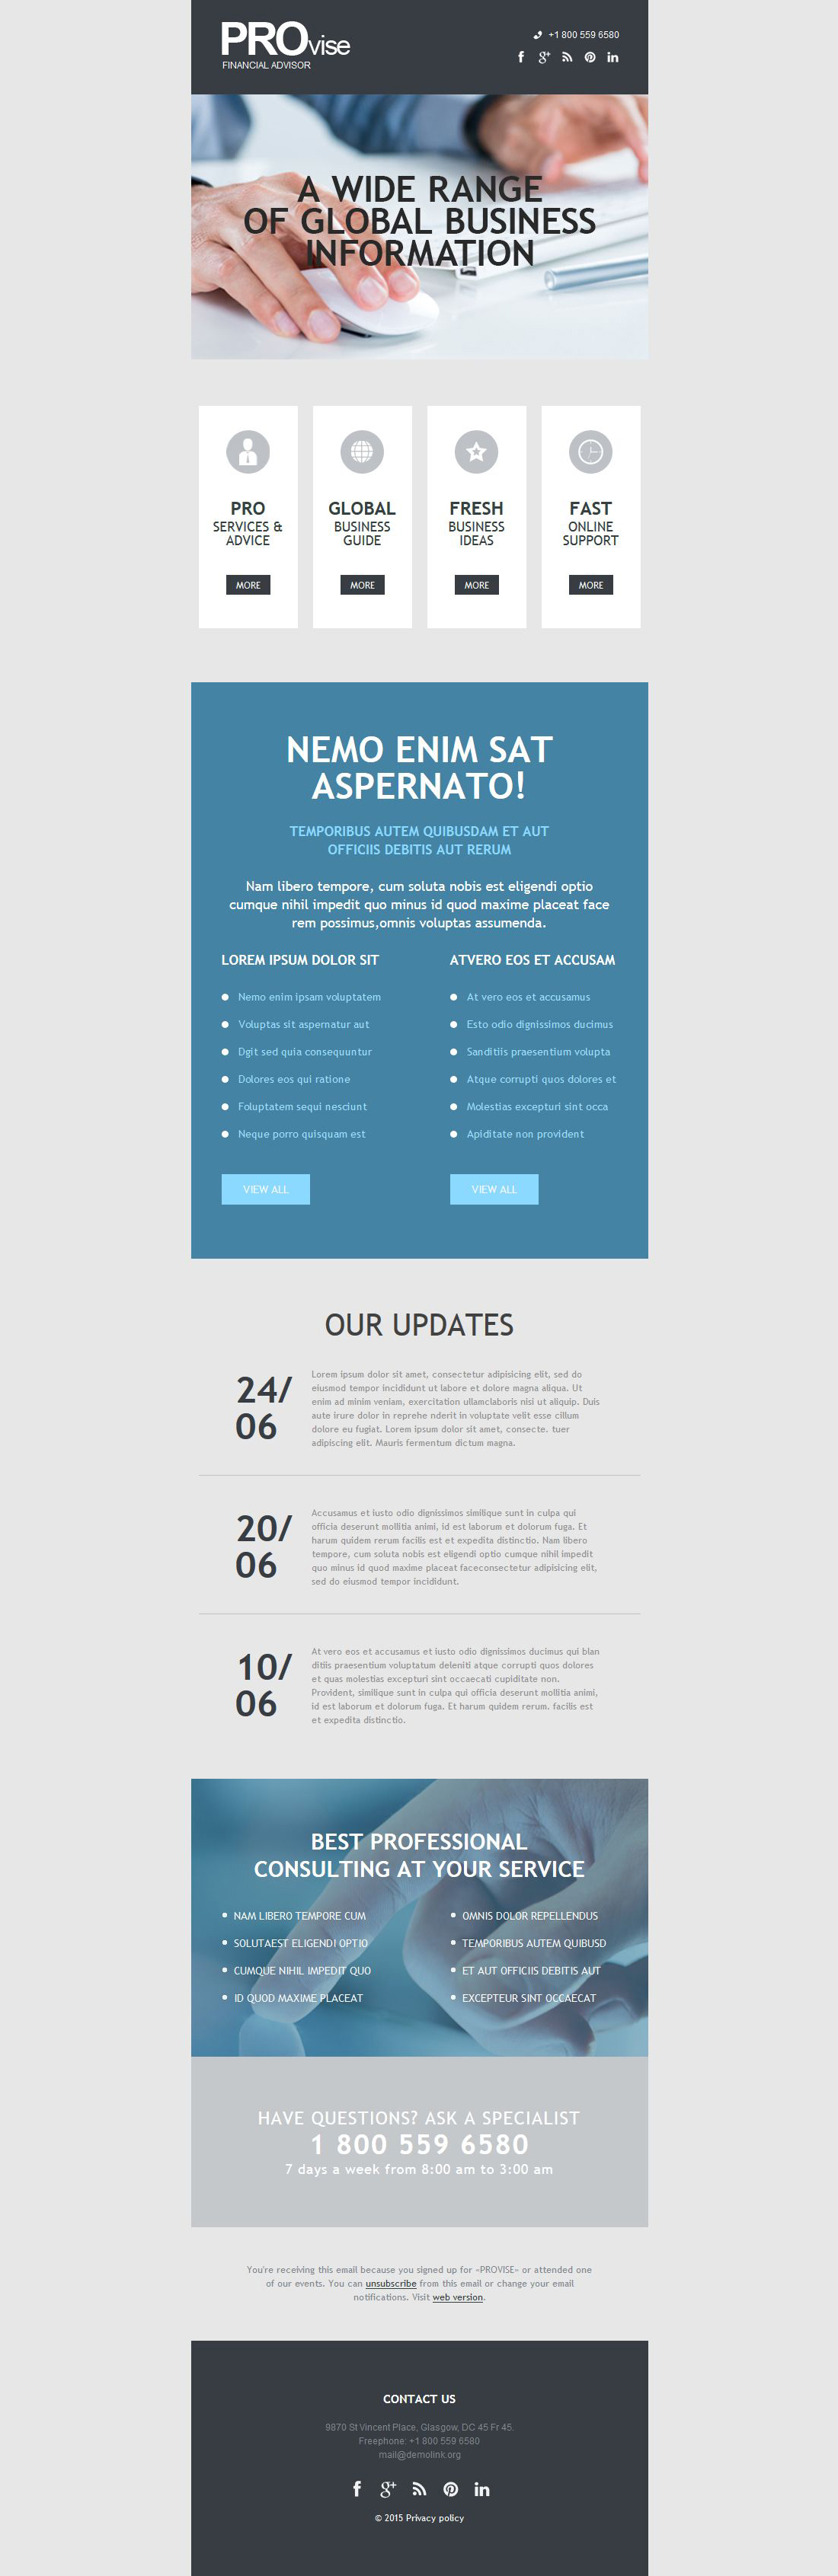 corporate newsletter templates - Ecza.solinf.co